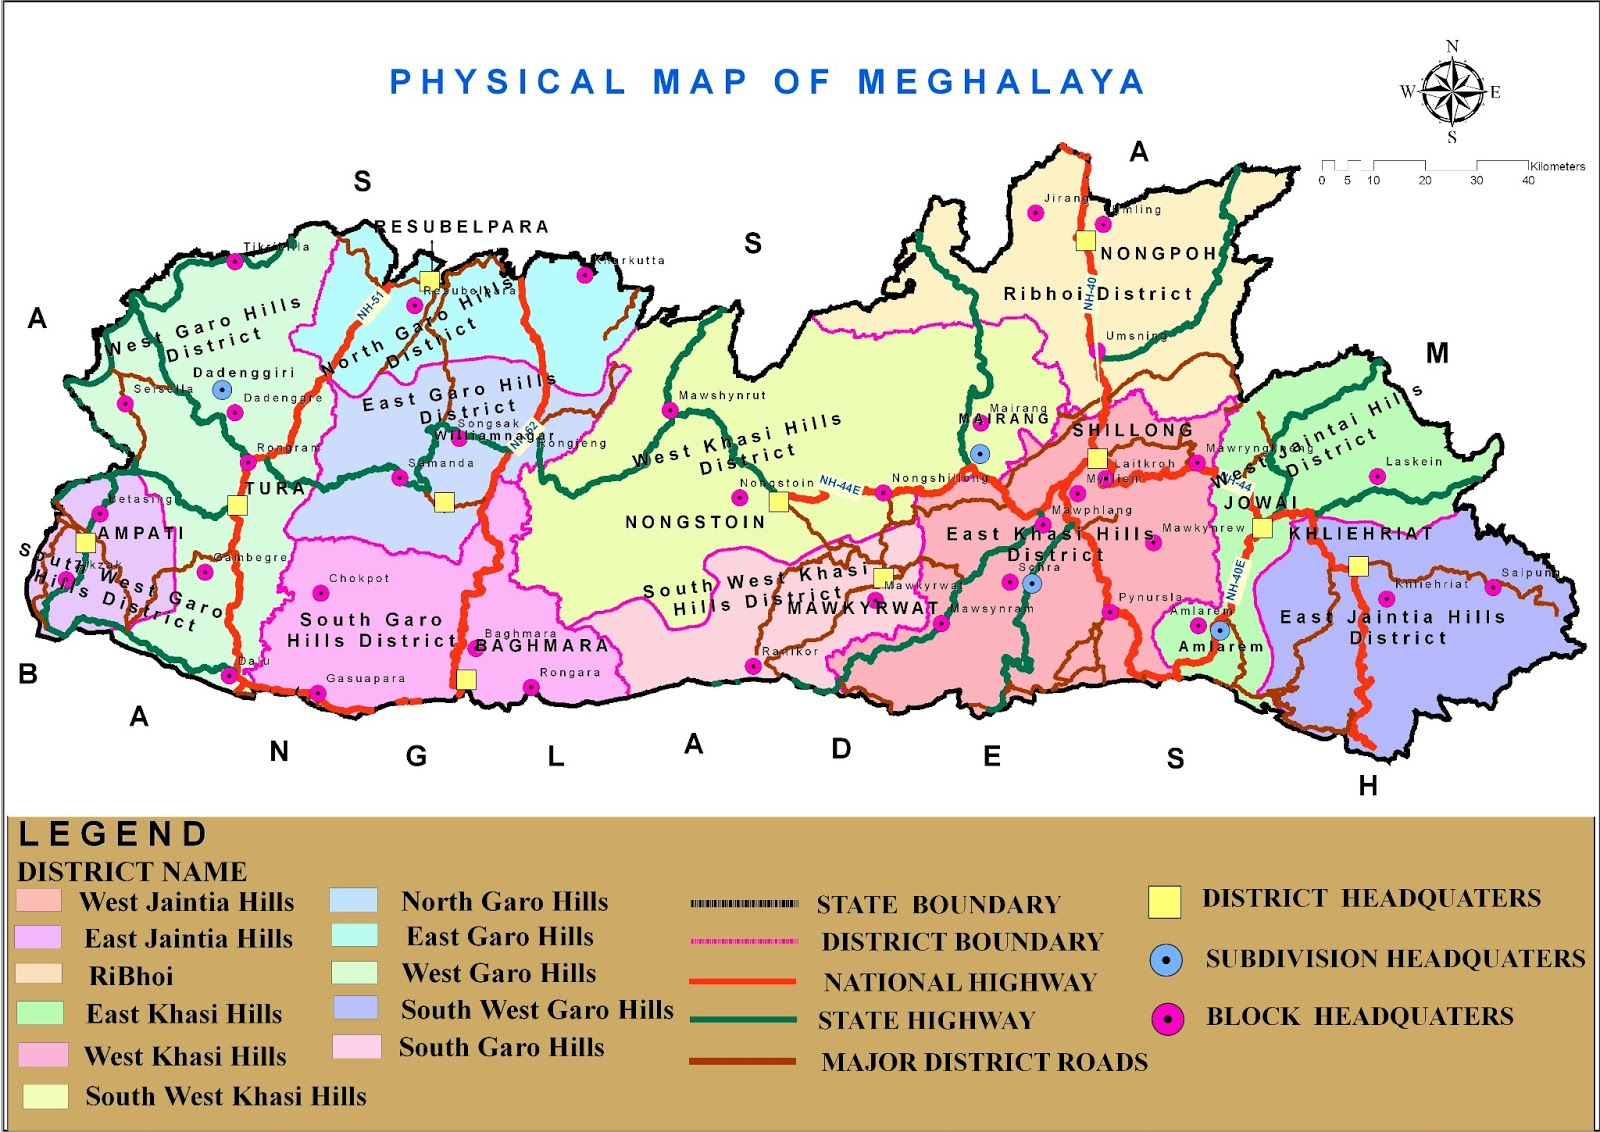 South West Garo Hills District